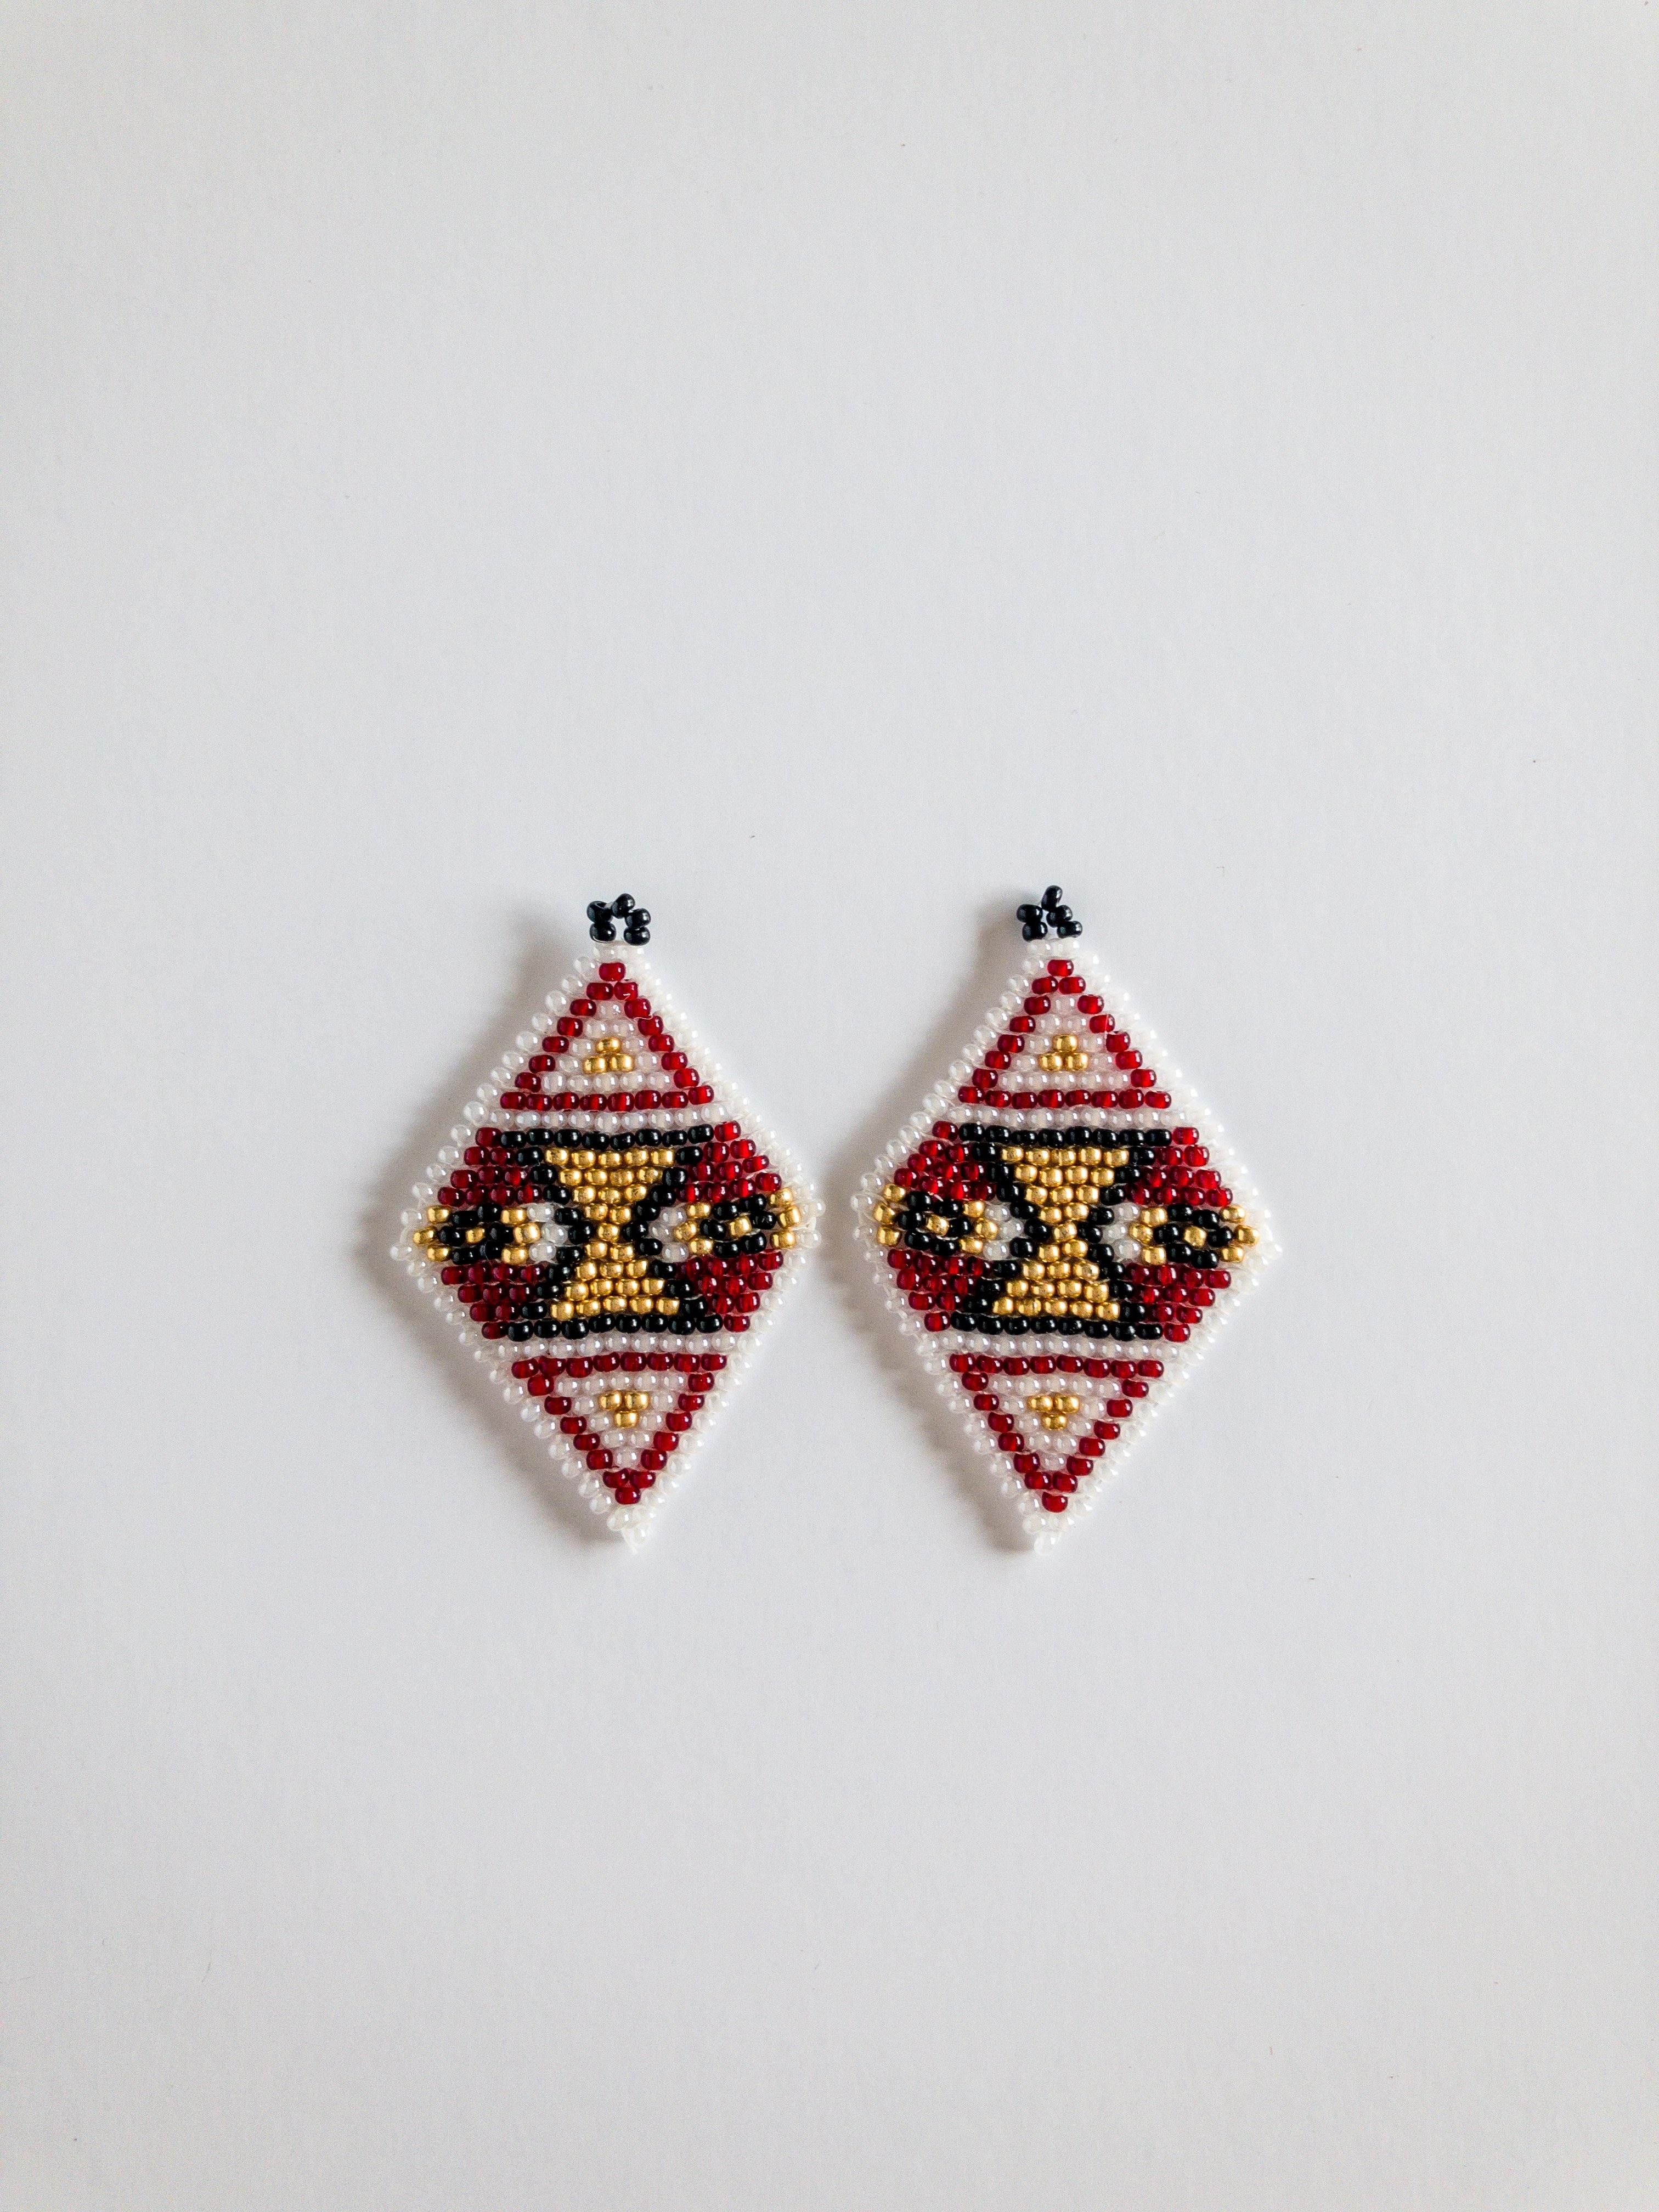 Diamond shaped seed bead earrings with red, gold, white and black beads